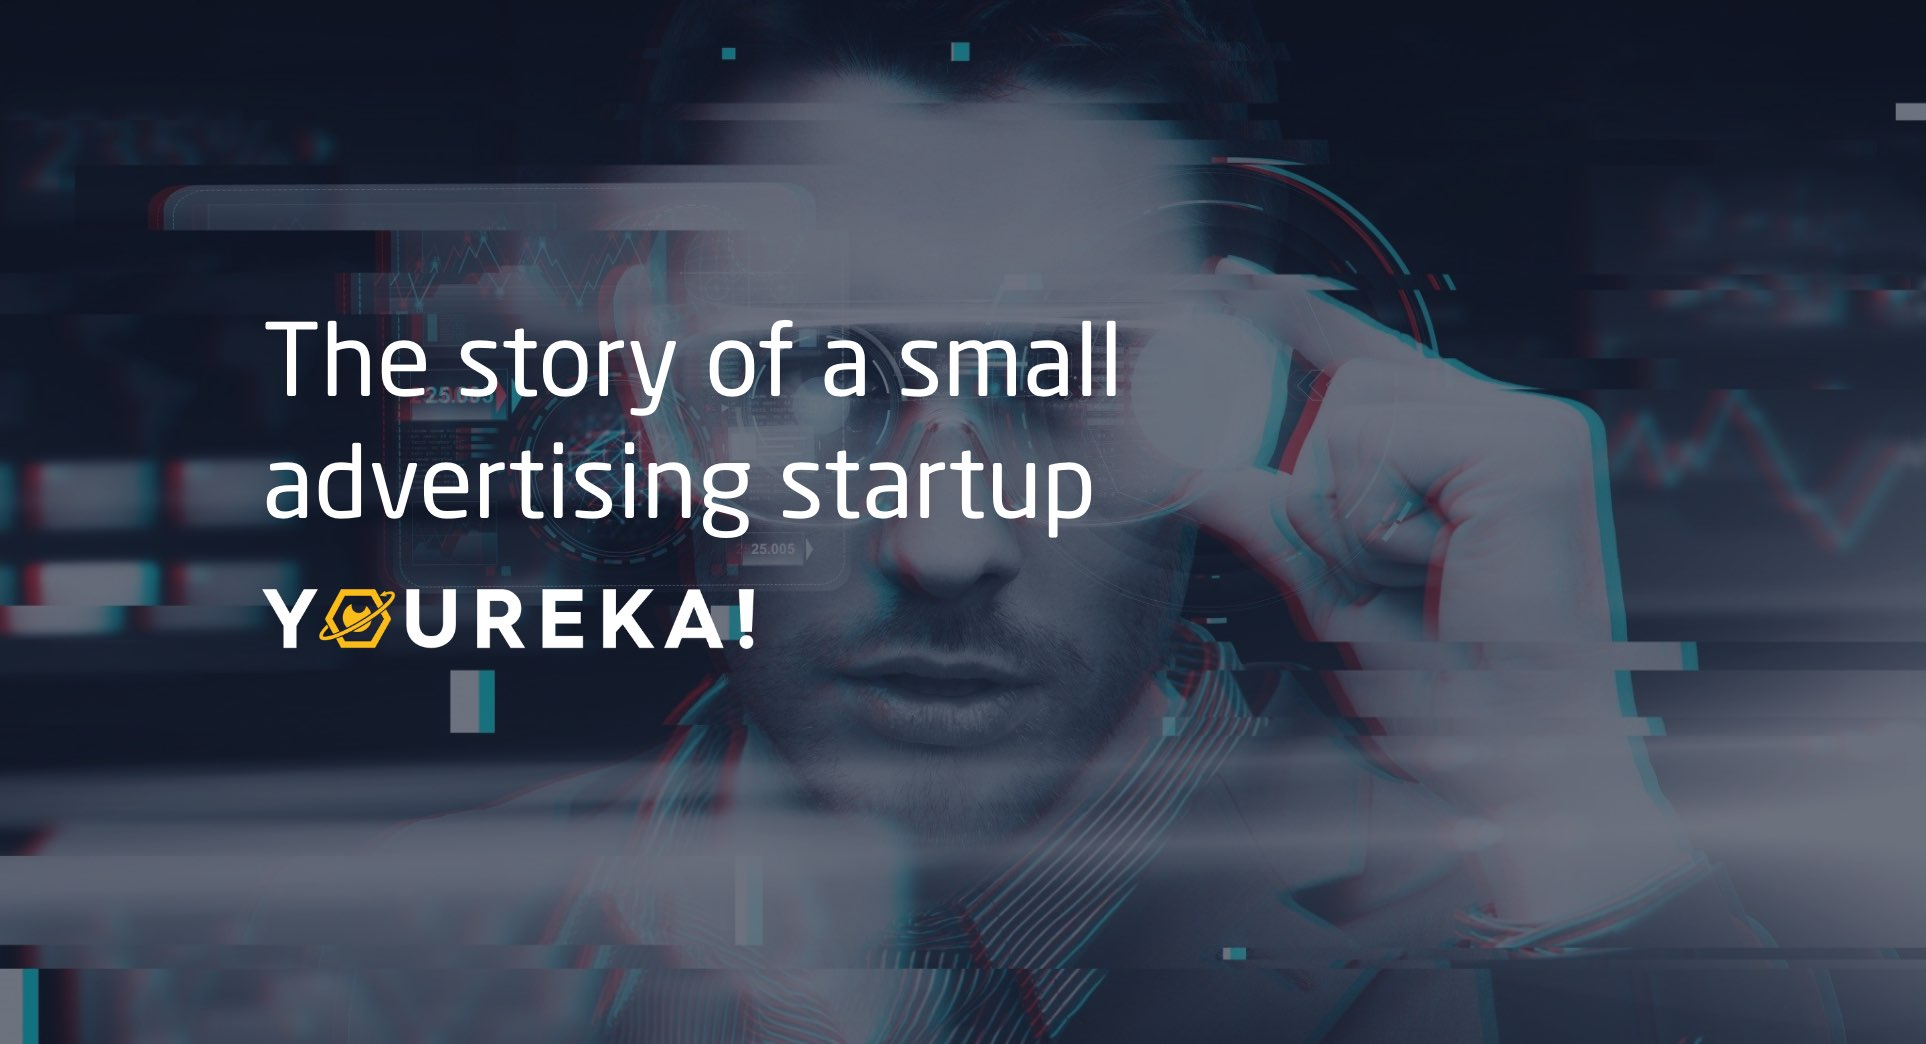 Yoreka - The story of a small advertising startup that helps world-known football clubs